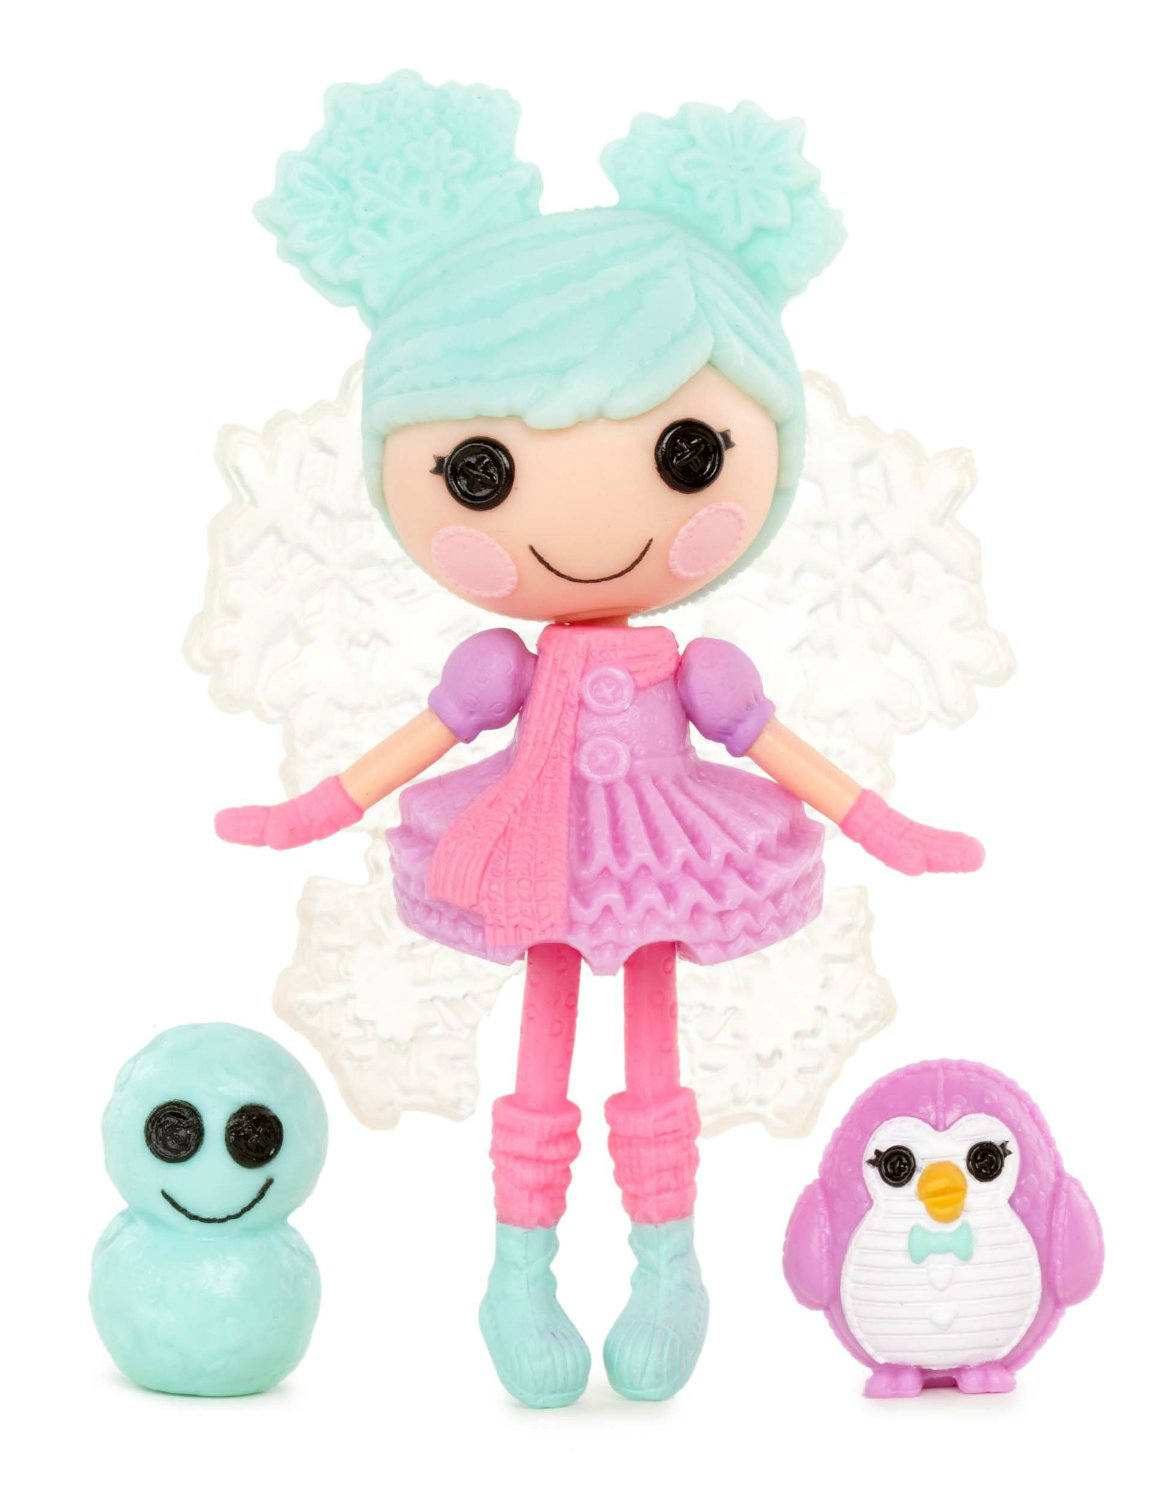 Sweater Snowstorm Lalaloopsy Land Wiki Fandom Powered